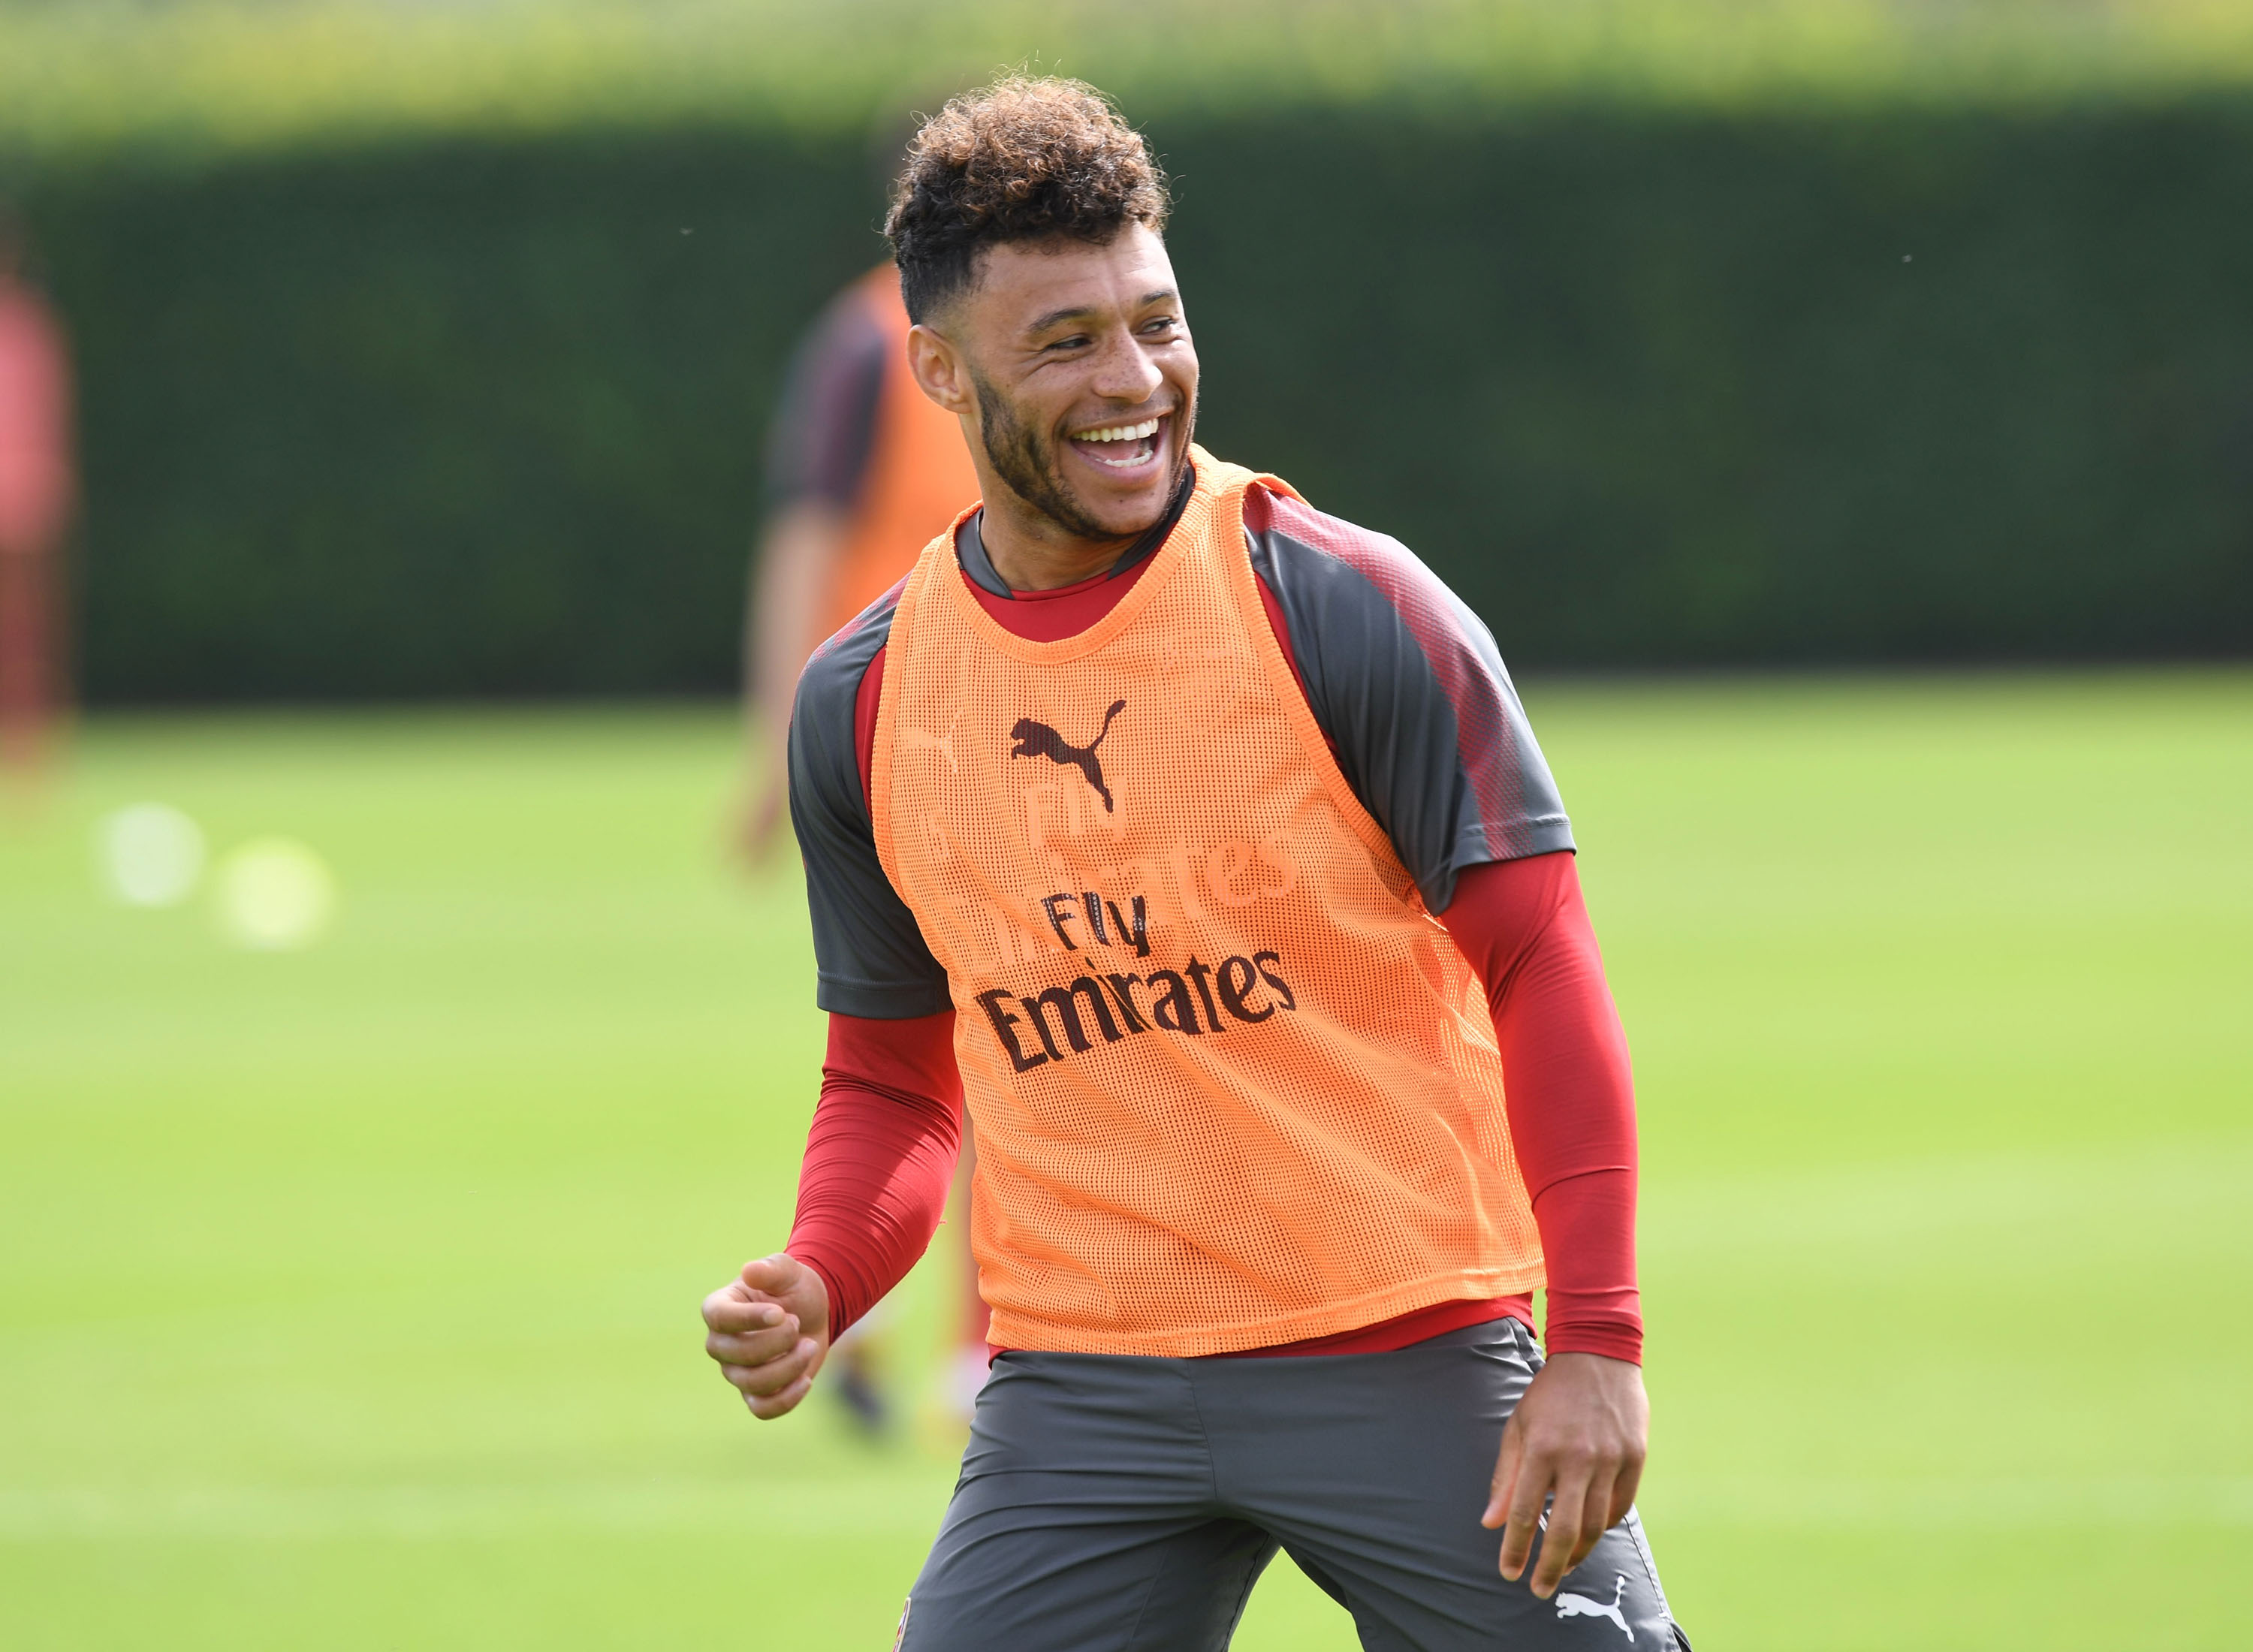 Liverpool can pile misery on Arsenal and Arsene Wenger with Alex Oxlade-Chamberlain signing – Tony Cascarino